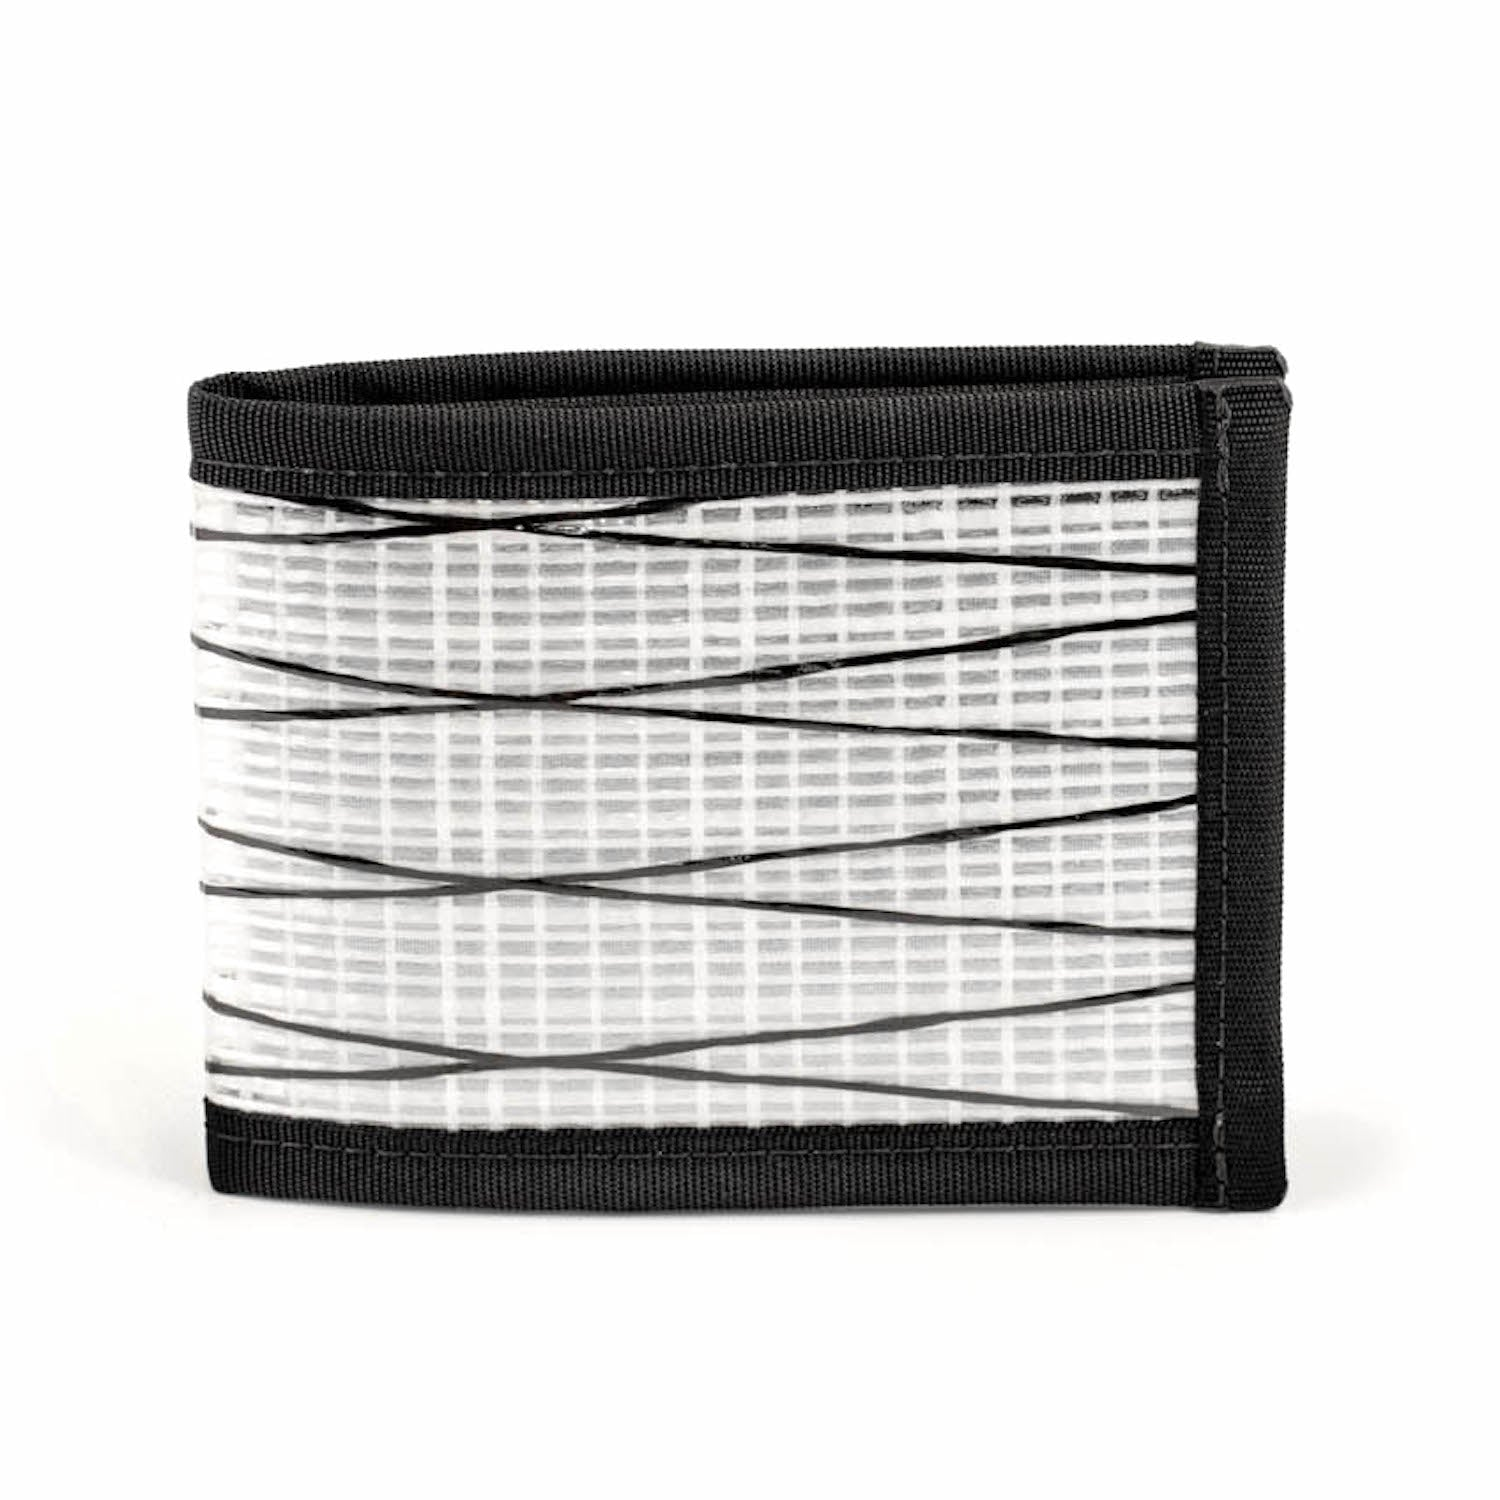 Recycled Sailcloth Vanguard - Bifold Wallet